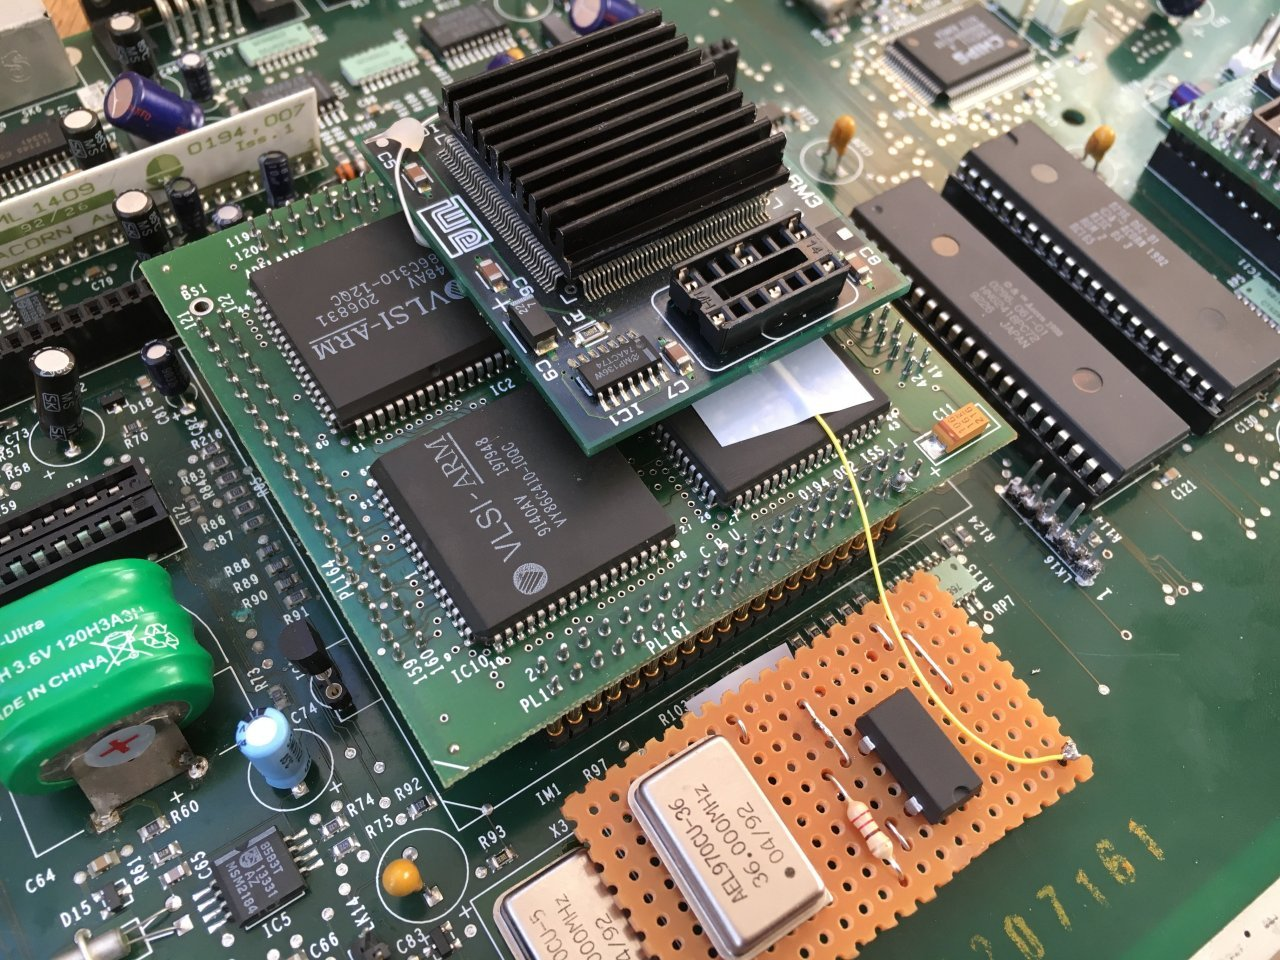 Acorn Archimedes A3010 ARM3 Installed